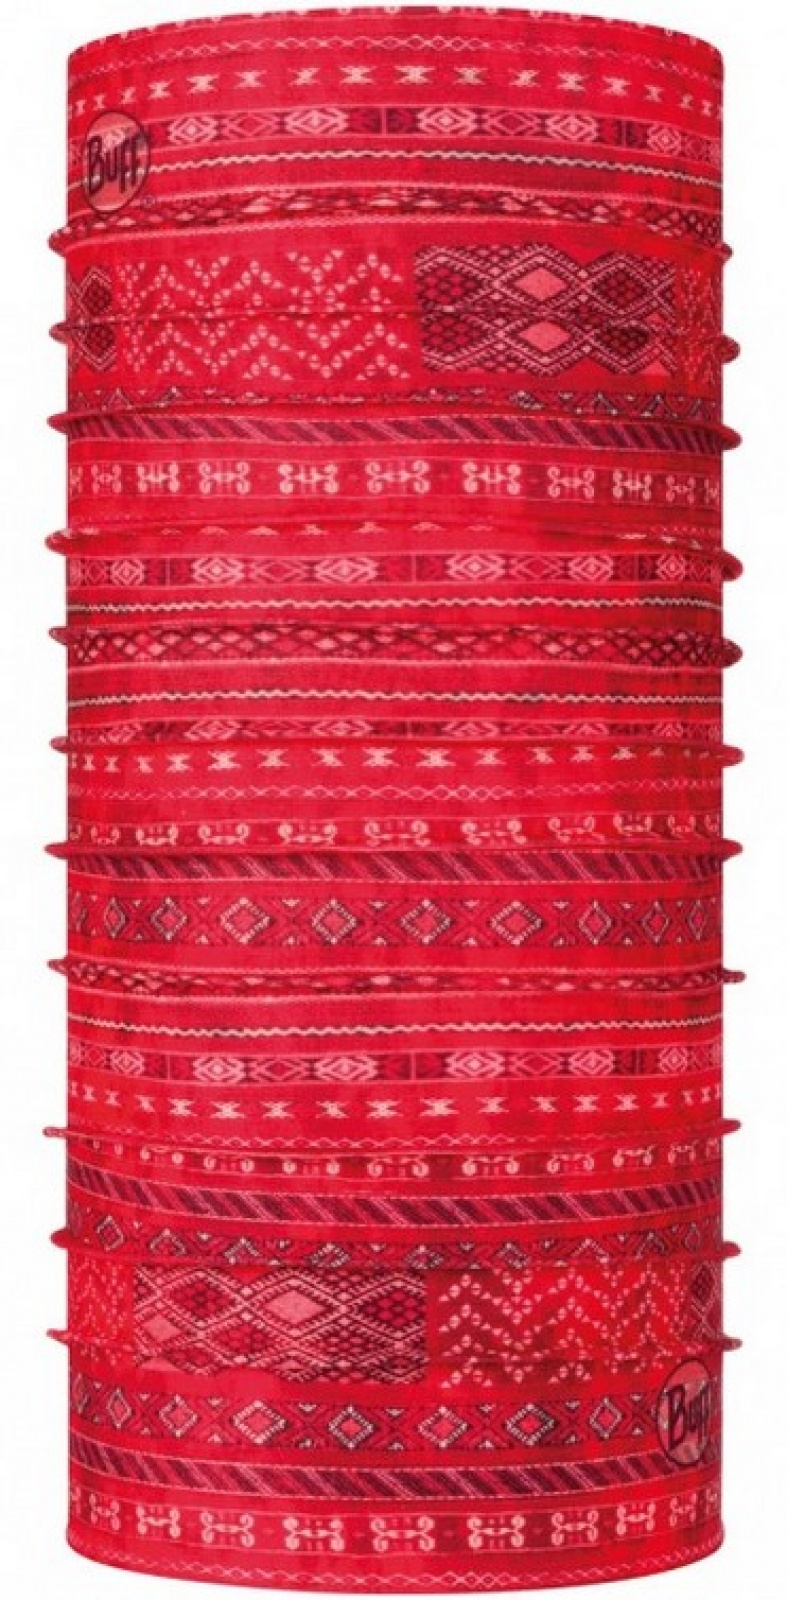 Бандана Buff Coolnet UV+ Sadri red летняя Sadri red